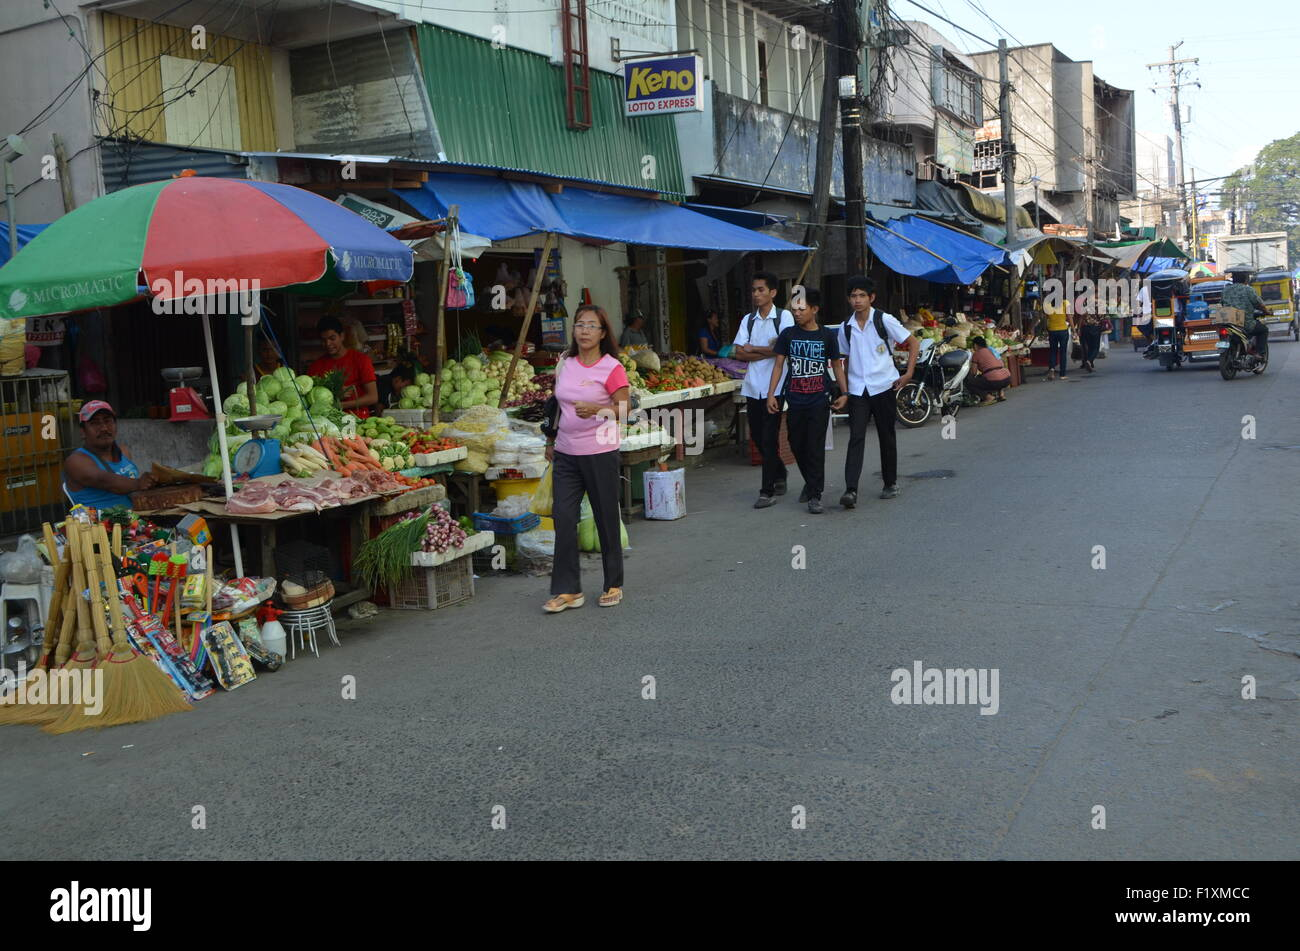 The market place inTugeogharo the northernmost state of thePhilippines. Streets wthstalls selling freshvegetables - Stock Image